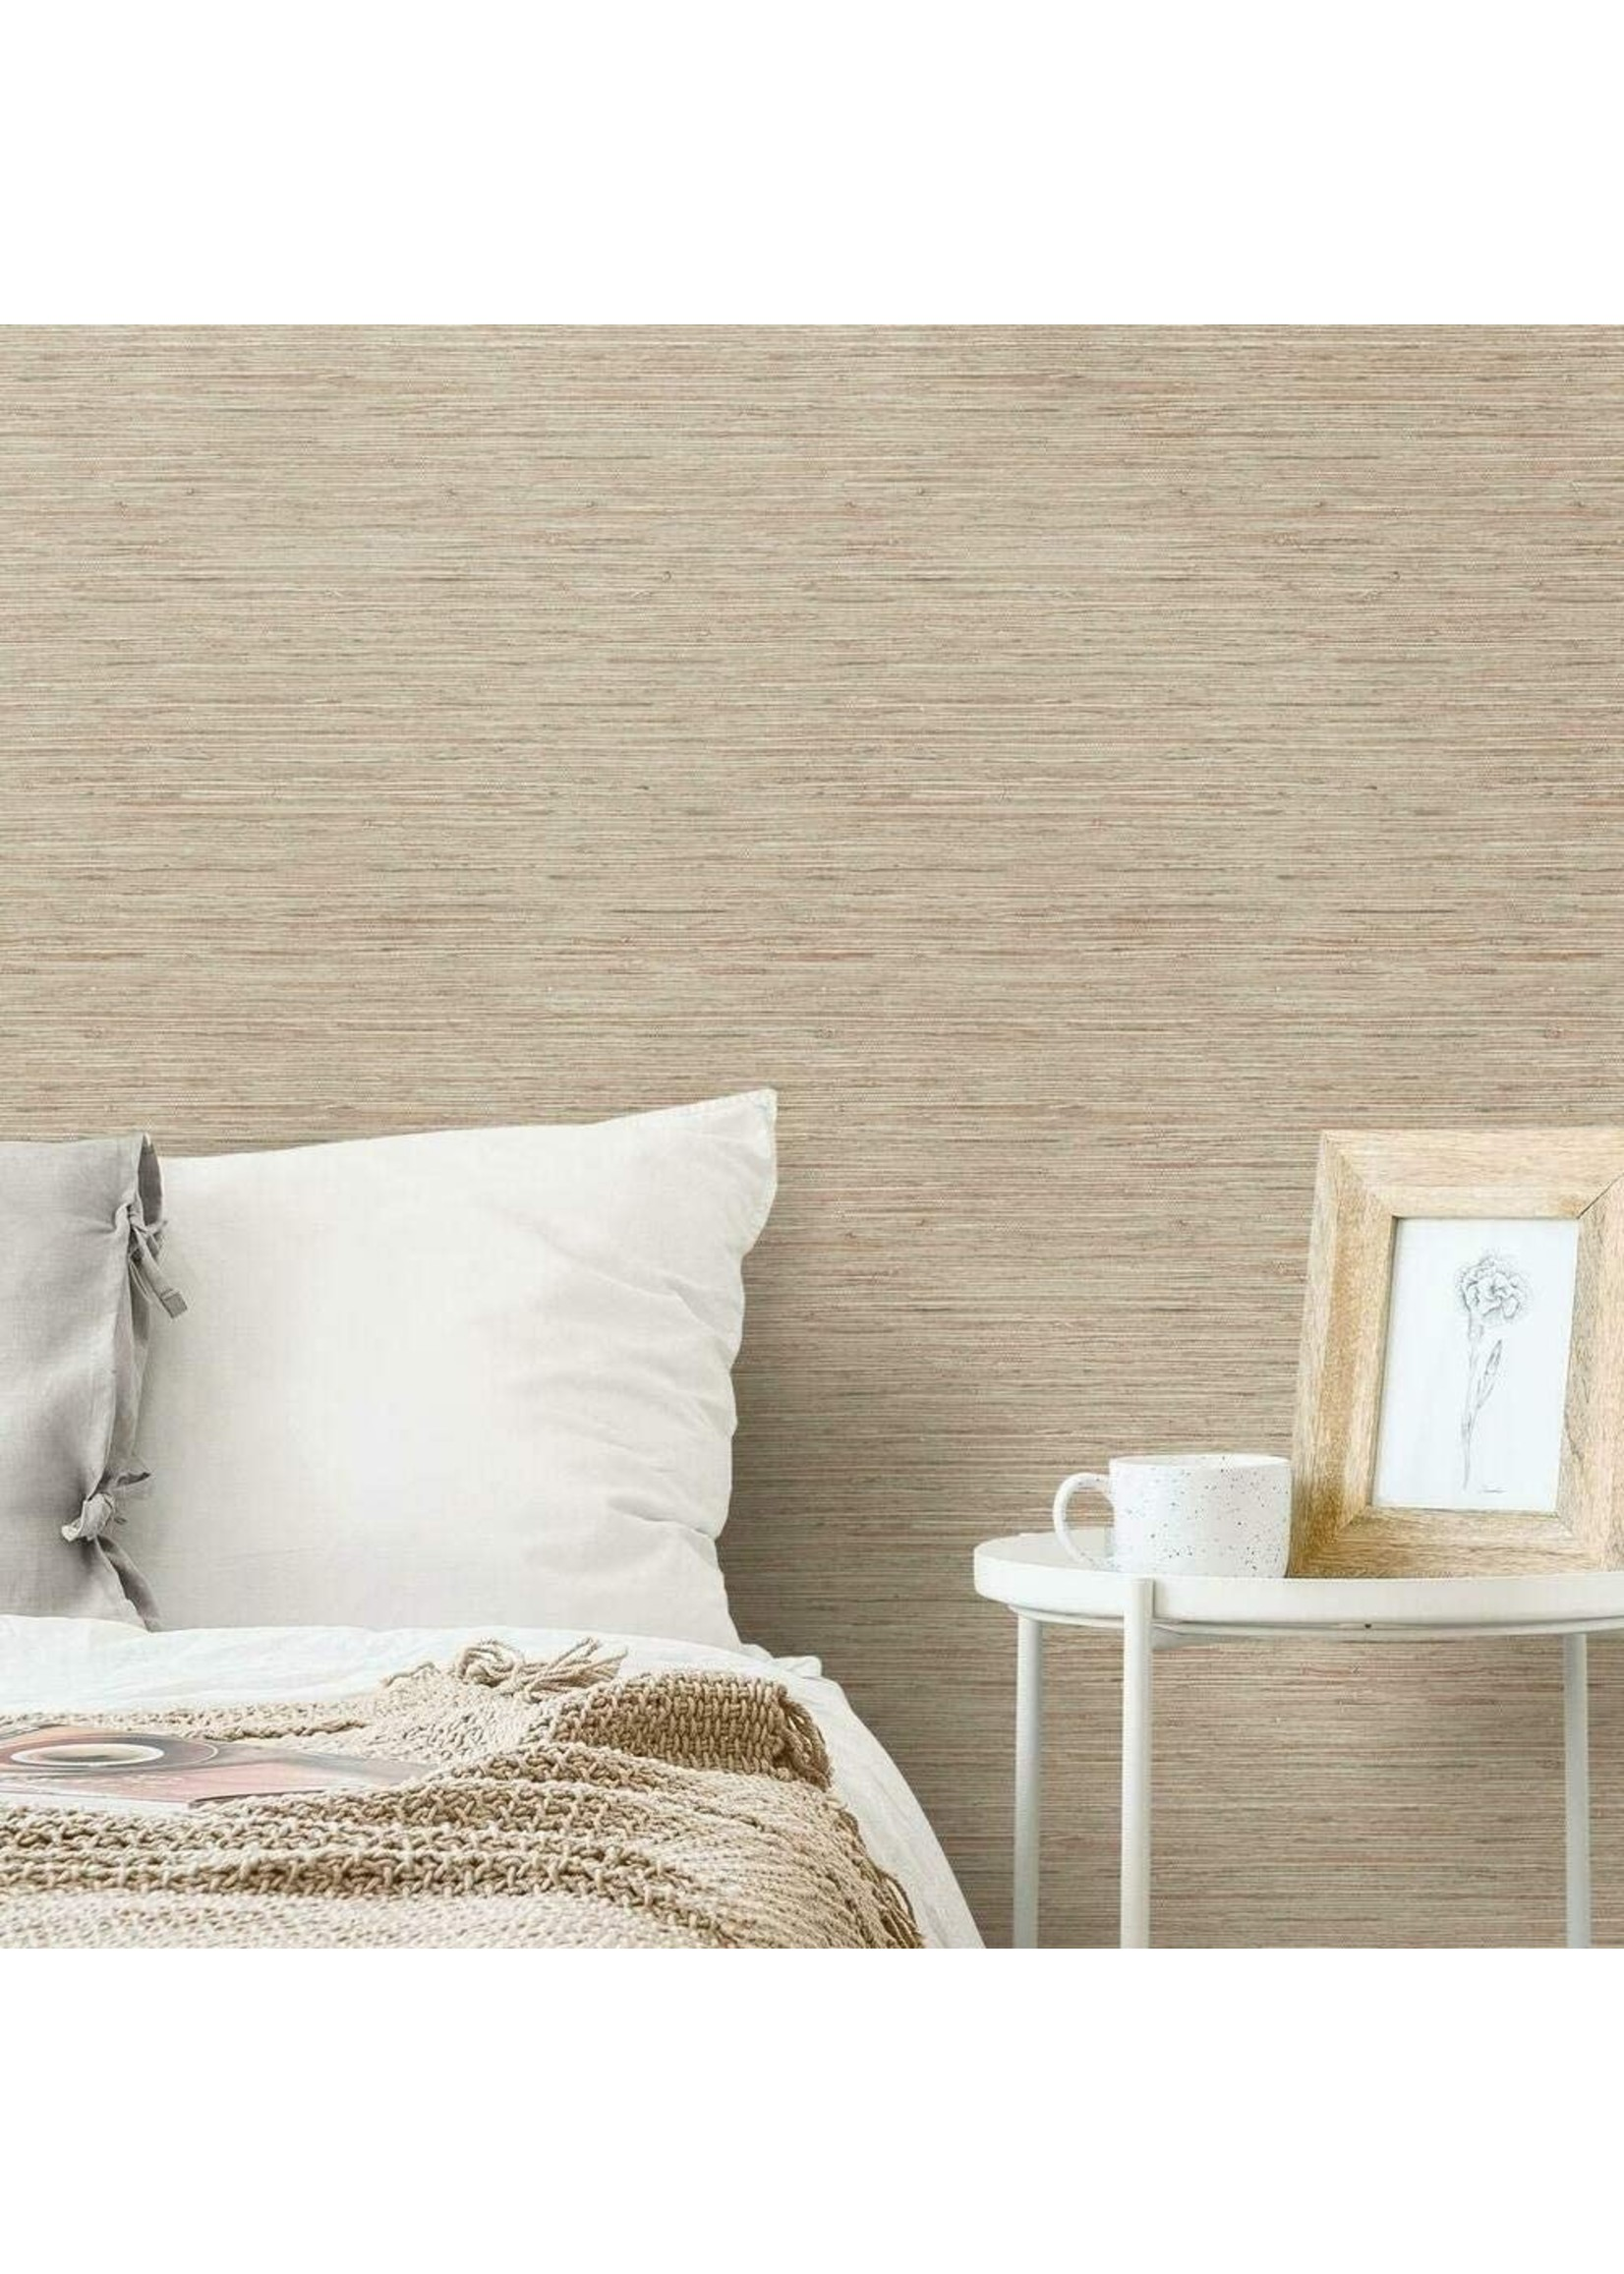 *Luxe Haven Skylight Luxe Weave Peel And Stick Wallpaper - 28.19 SQ. FT.